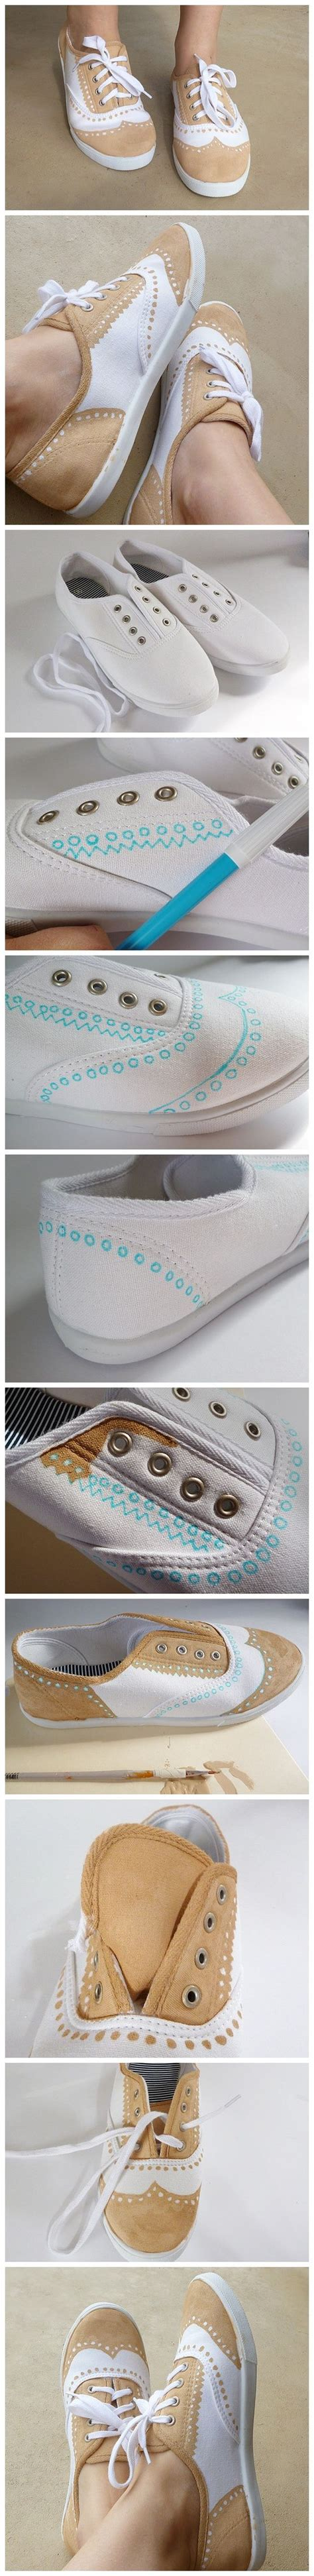 saddle shoes diy oxfords diy diy oxfords shoes and diy and